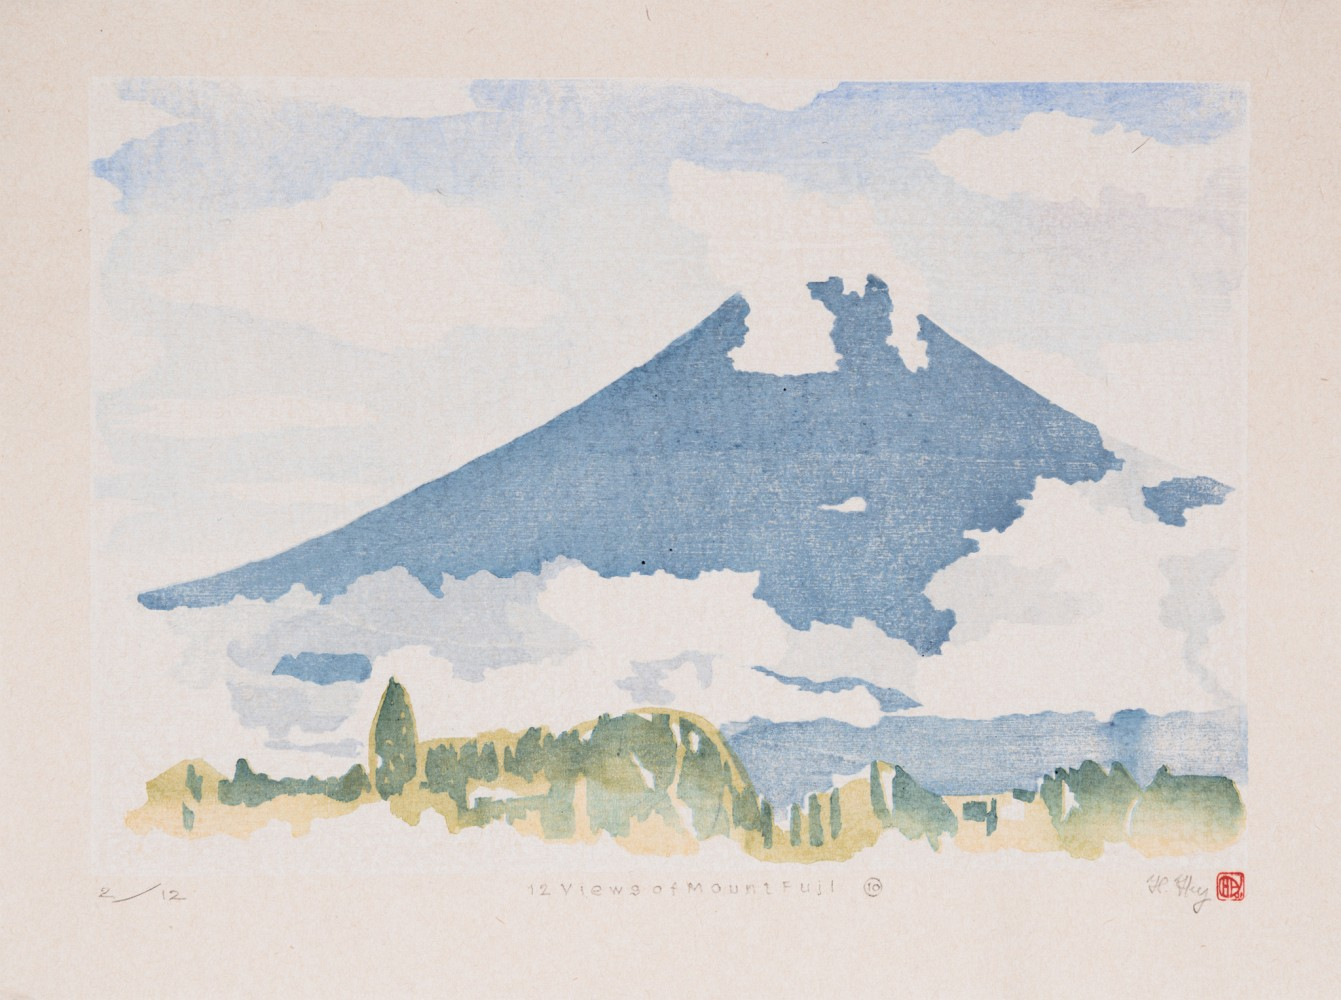 Full image of artwork 12 Views of Mount Fuji #10